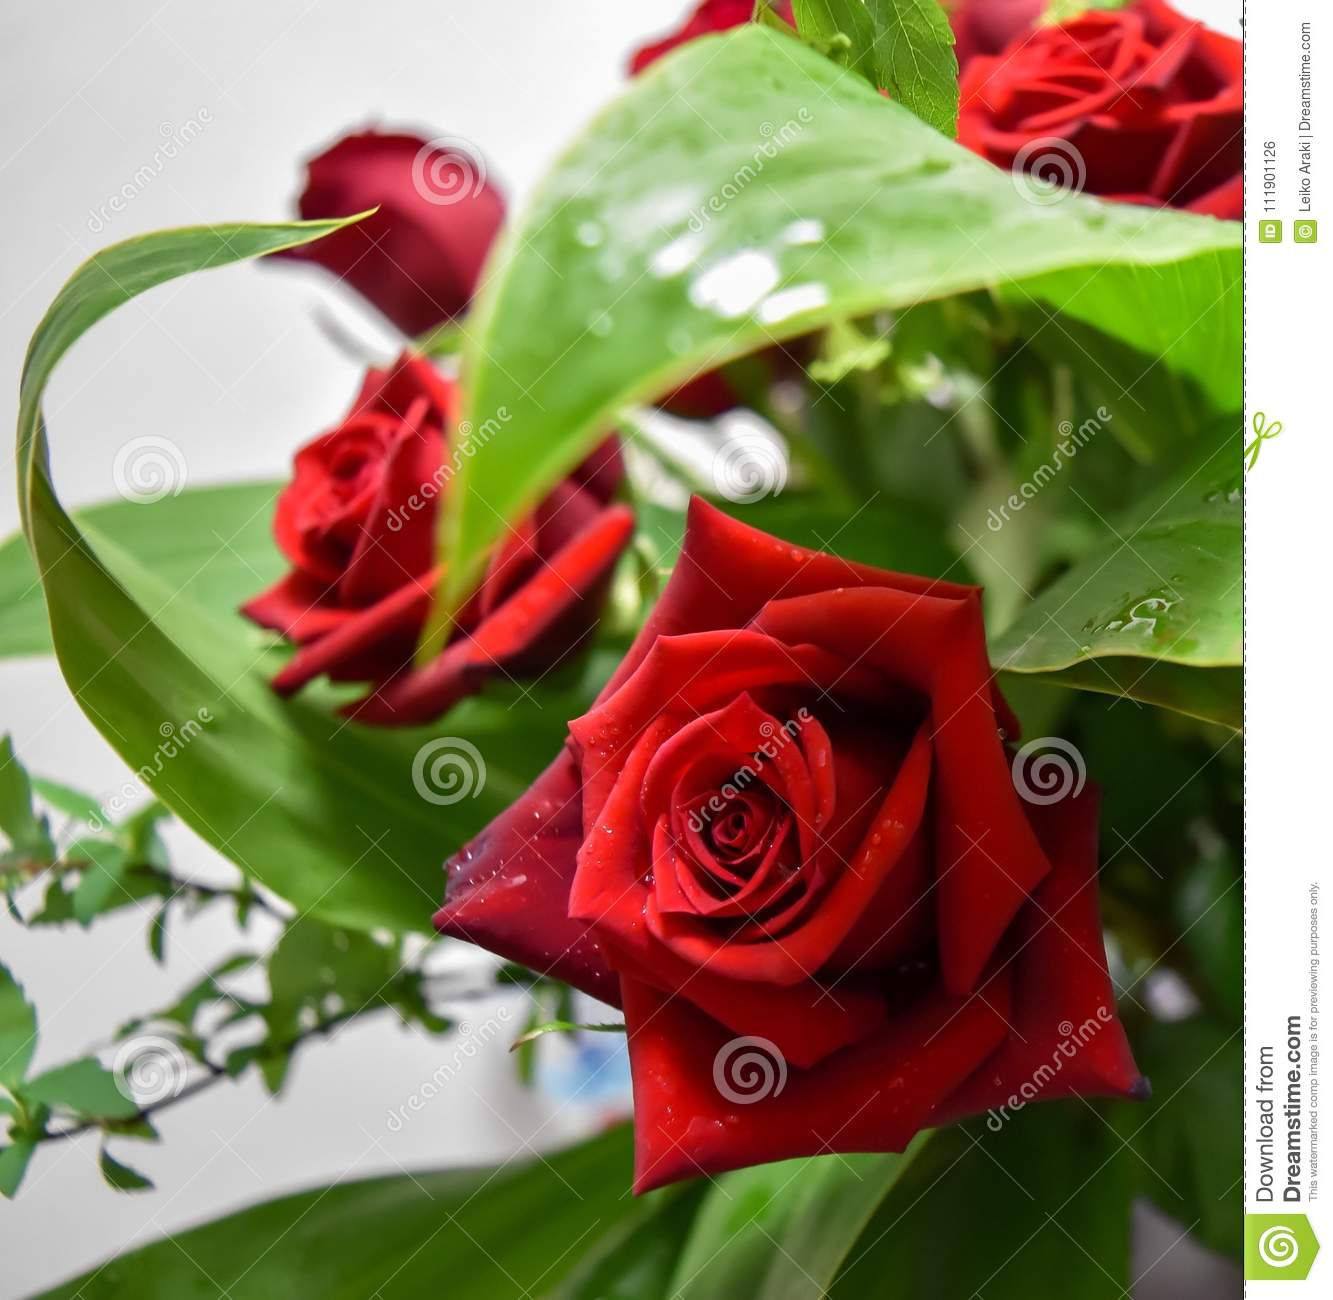 Two Roses Red Decoration Flowers Bouquet Stock Photo Image Of Gift